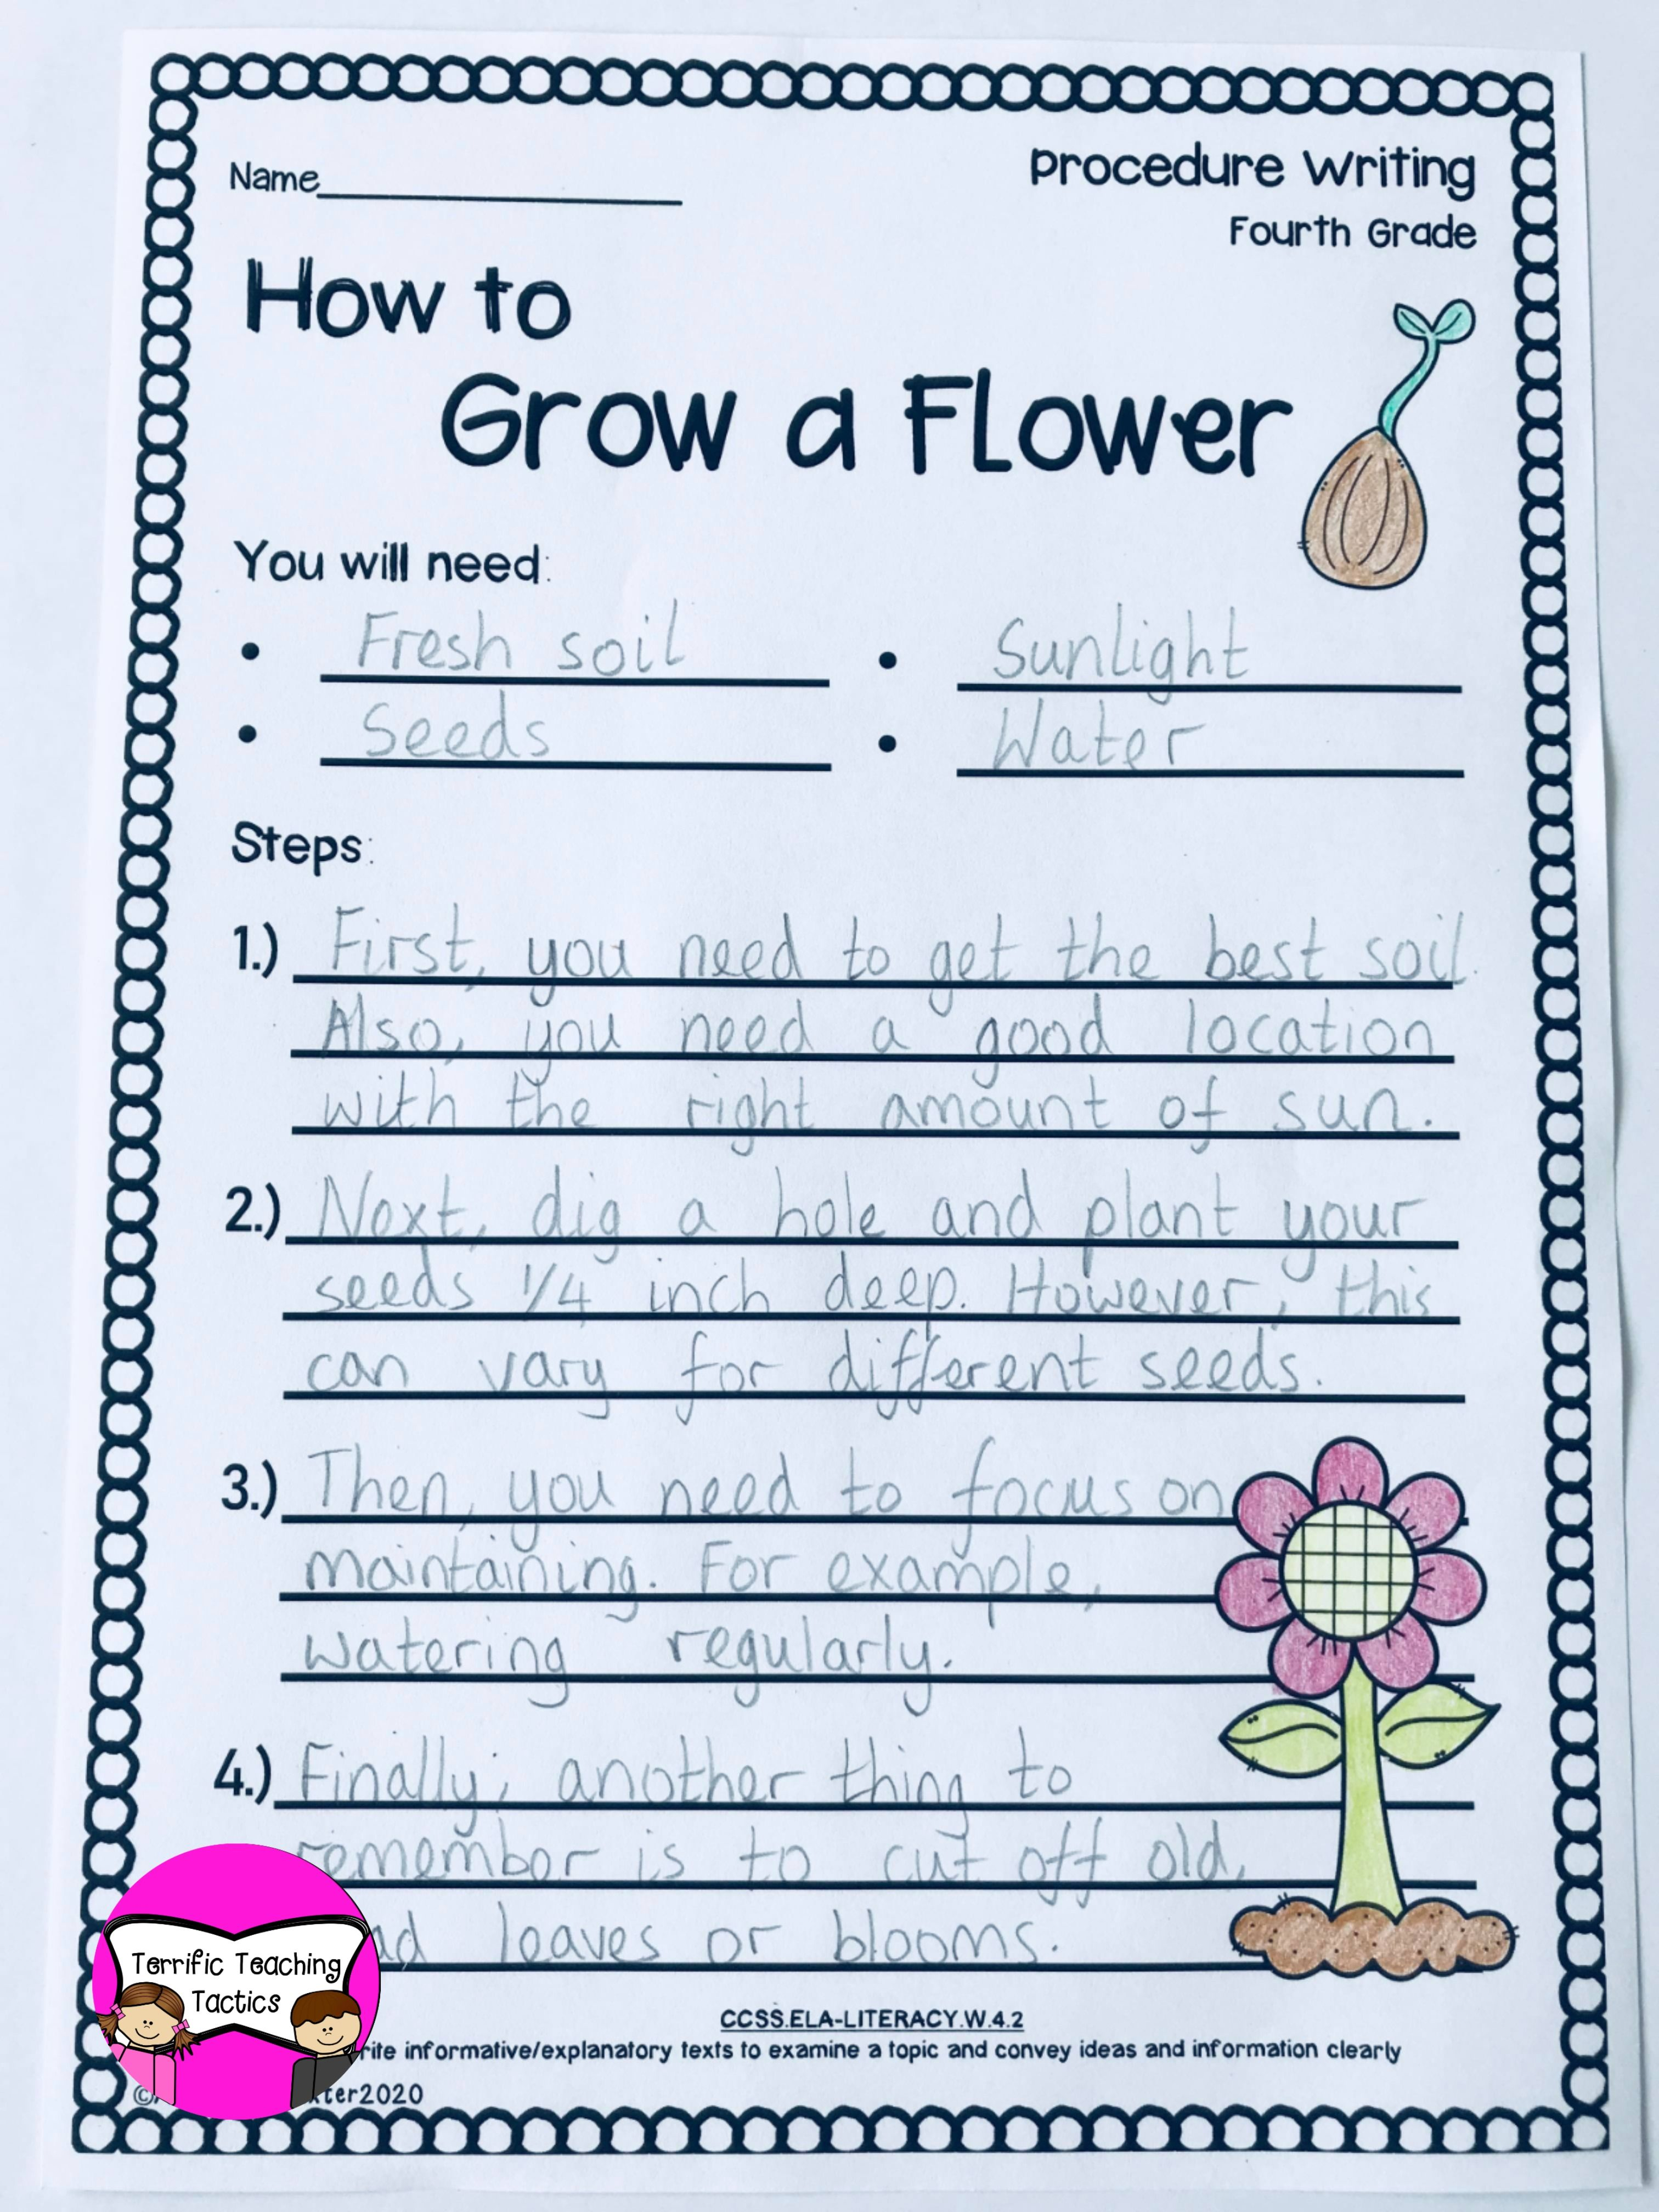 How To Grow a Flower Worksheet   Procedural writing [ 4032 x 3024 Pixel ]